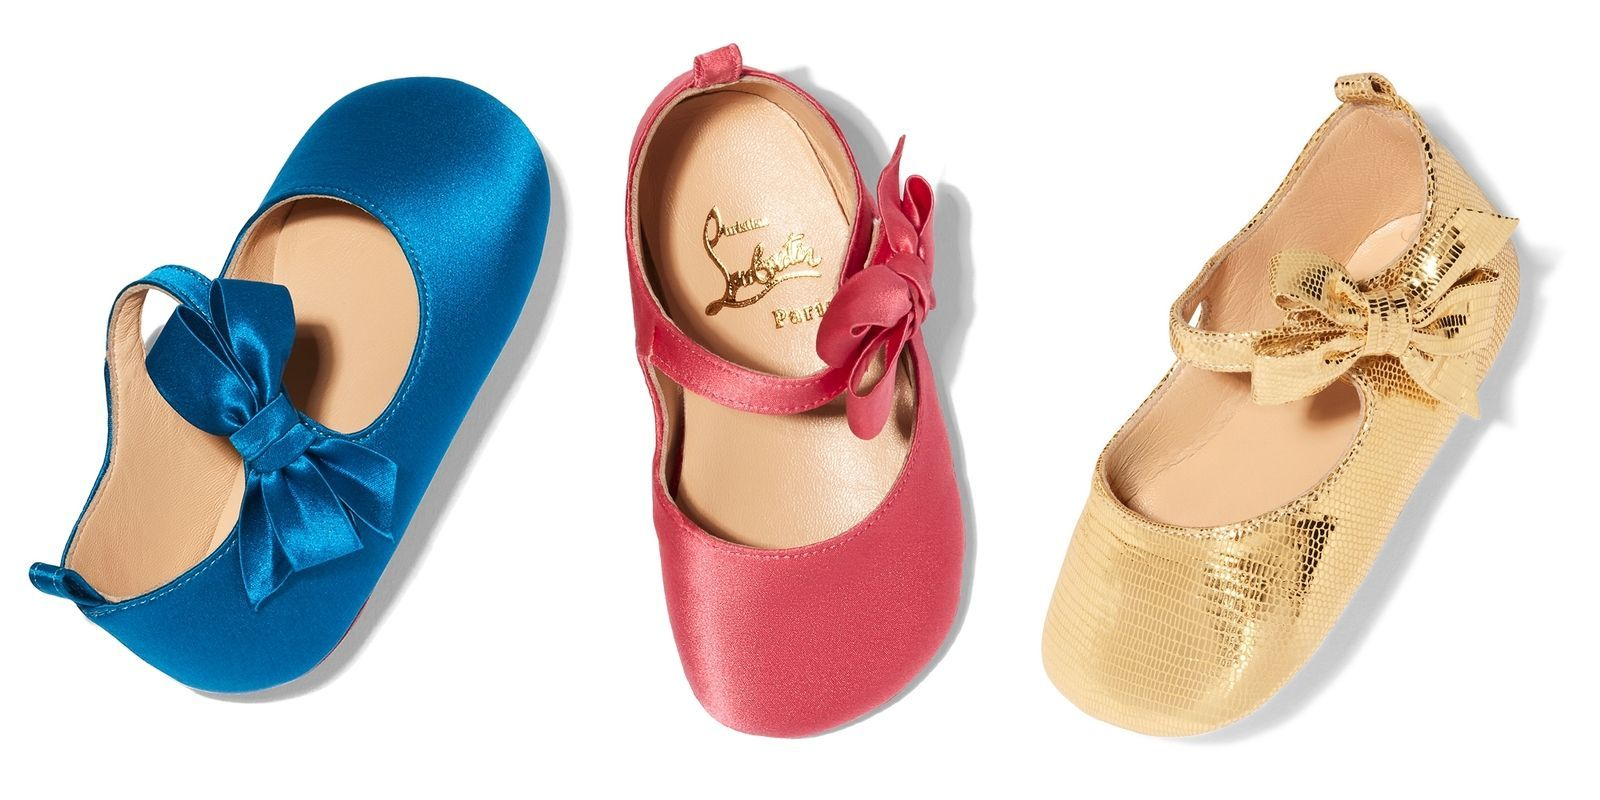 sold worldwide entire collection footwear Christian Louboutin Has Launched a Line of Red-Soled Baby Shoes ...